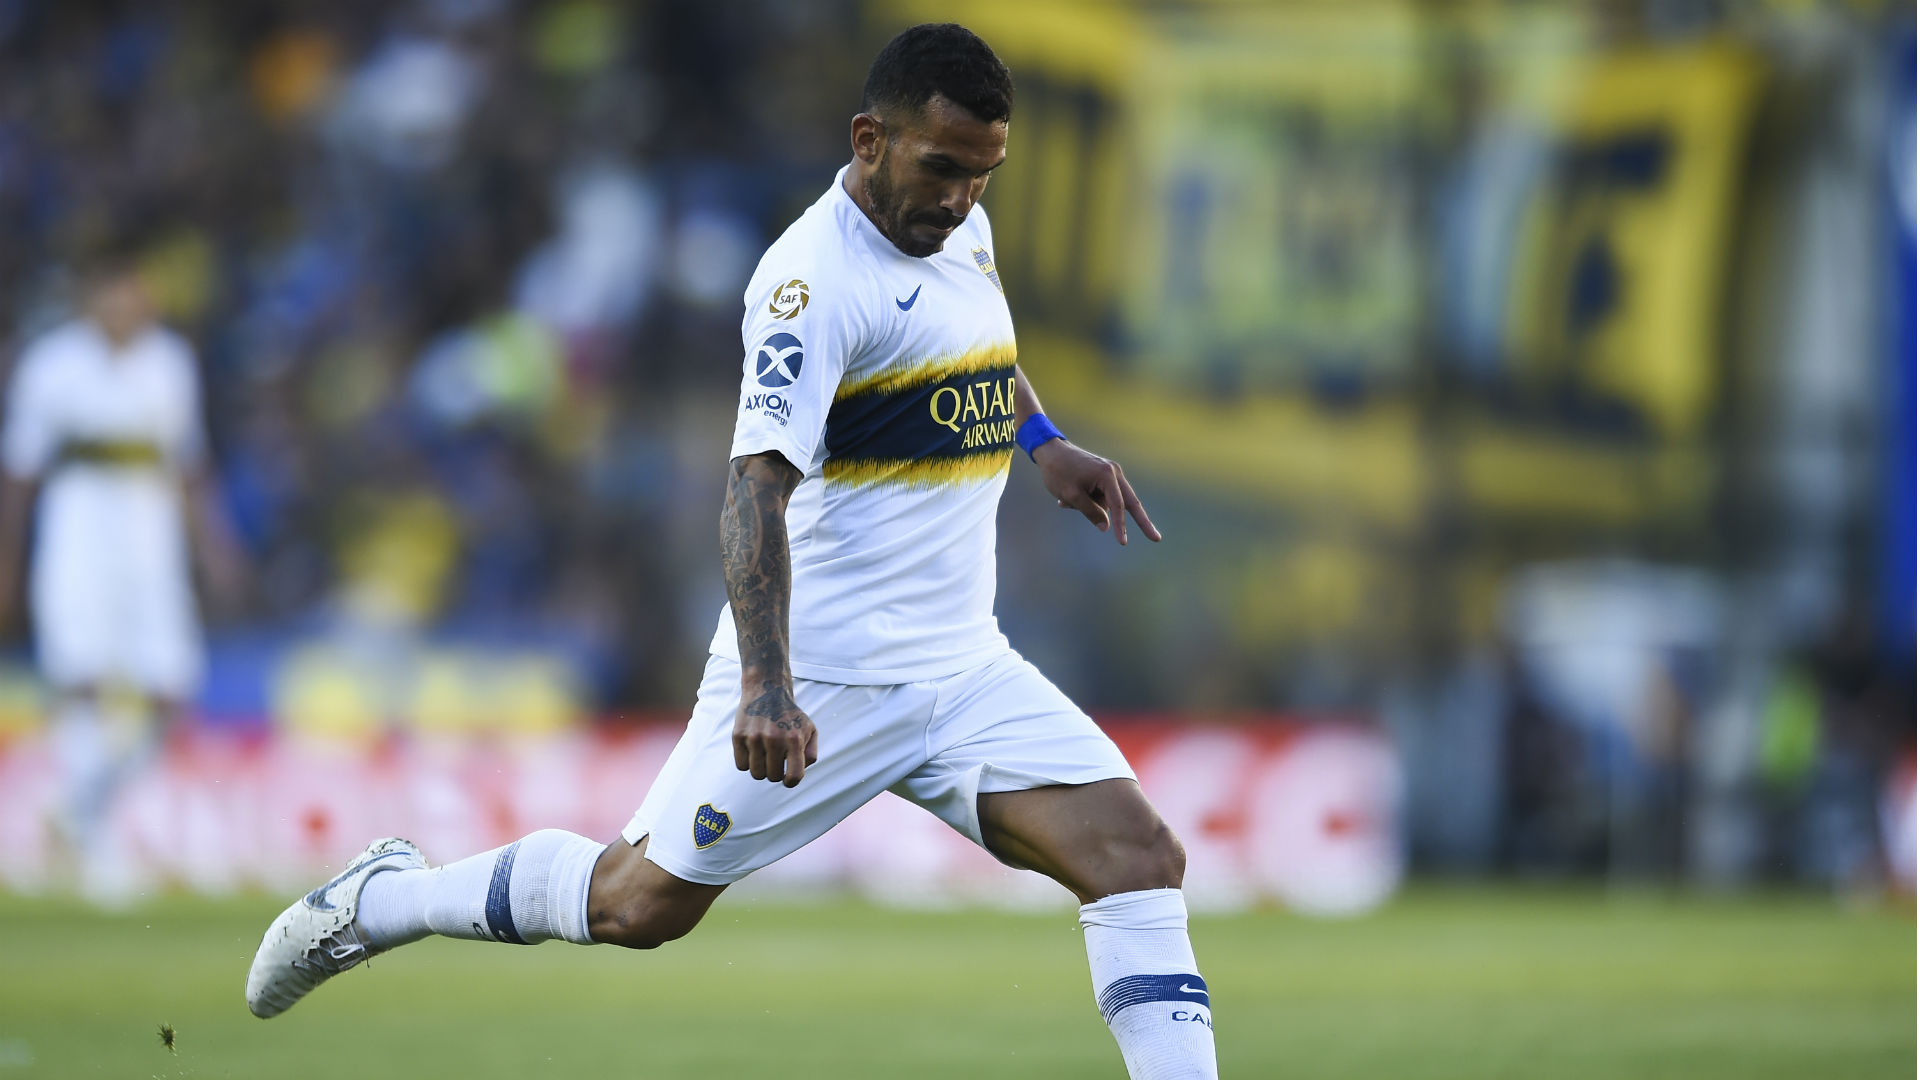 Copa Libertadores: Less pressure for River playing in Madrid, says Boca star Tevez